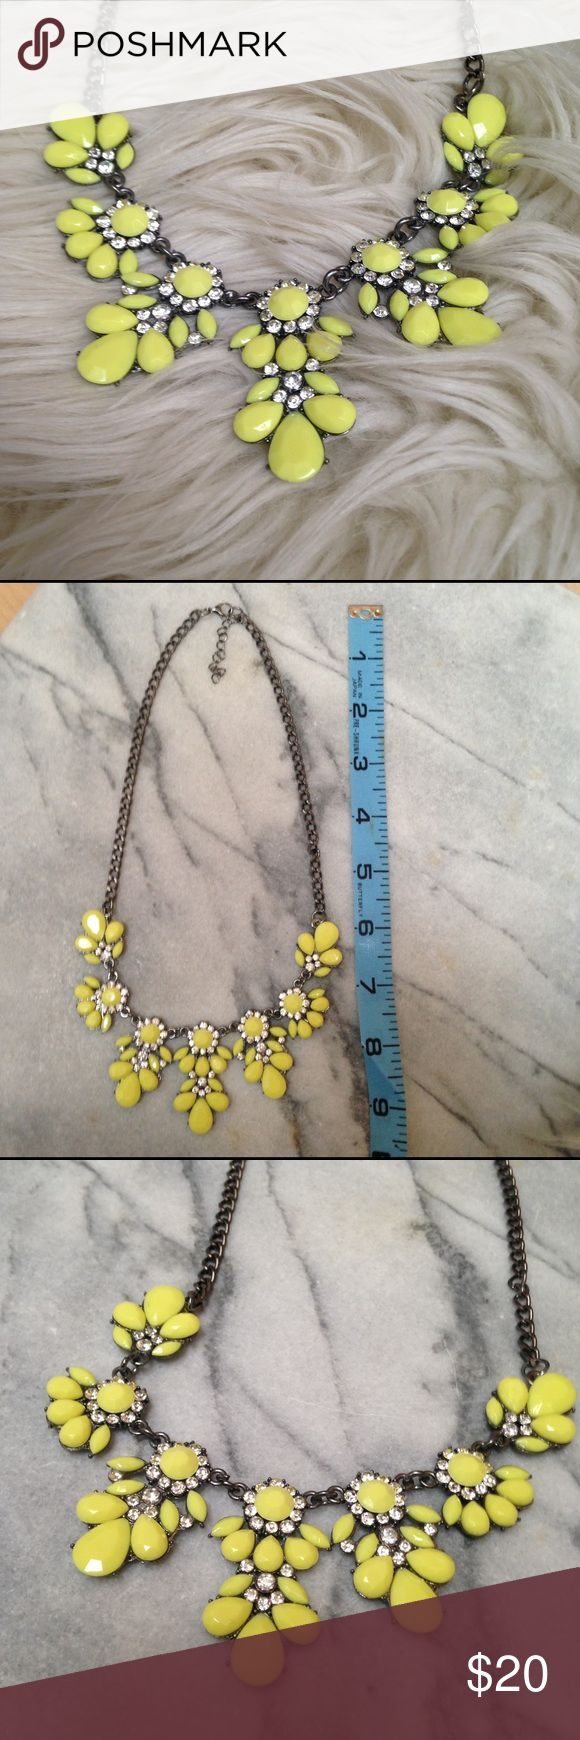 Neon yellow statement necklace w e l c o m e  t o  m y  c l o s e t   Neon yellow jewel crystal statement necklace with lobster clasp closure.  excellent used condition - worn once.  Approx 9in long.  All reasonable offers welcomed.                    question/unsure? Comment below  🚫TRADES thanks .                                                                   Thank you for stopping by 💕 Jewelry Necklaces